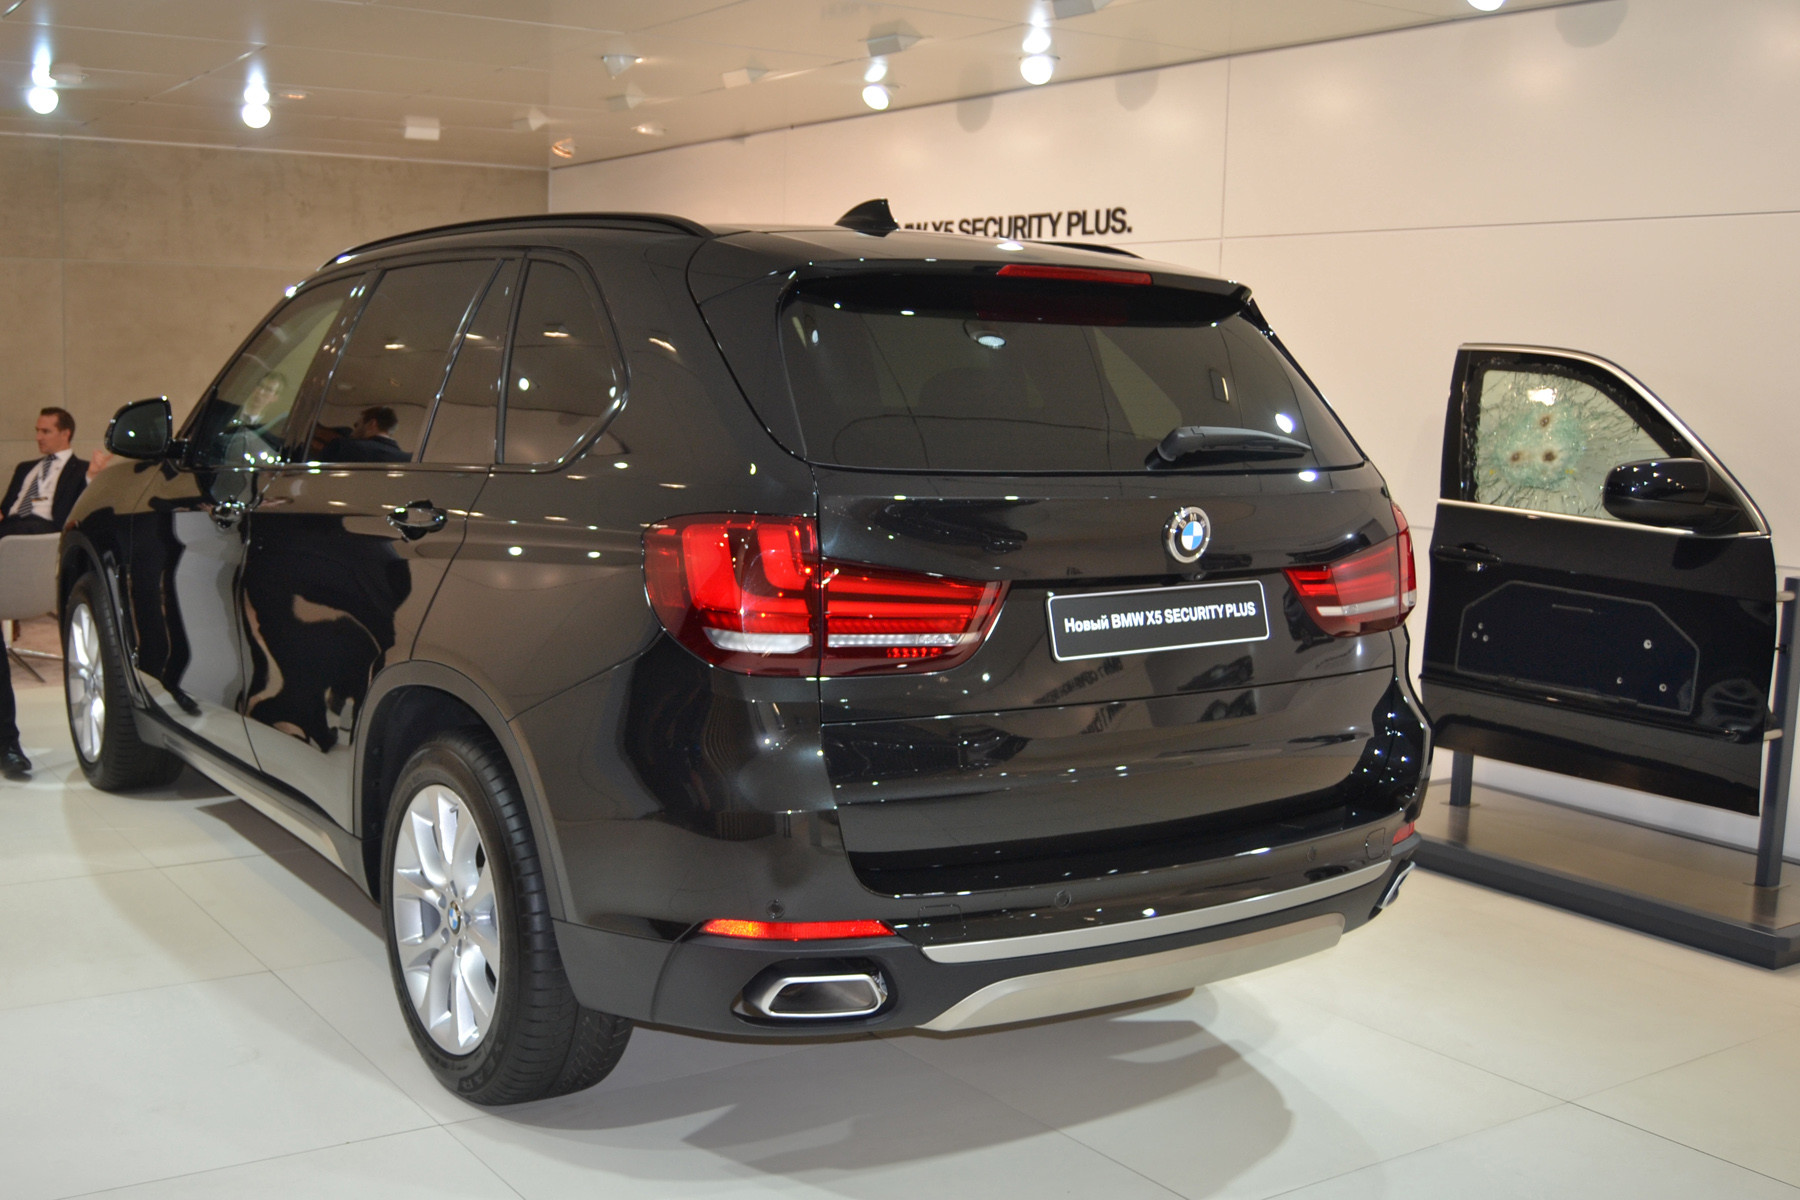 Bmw X5 Security Plus Photos Photogallery With 37 Pics